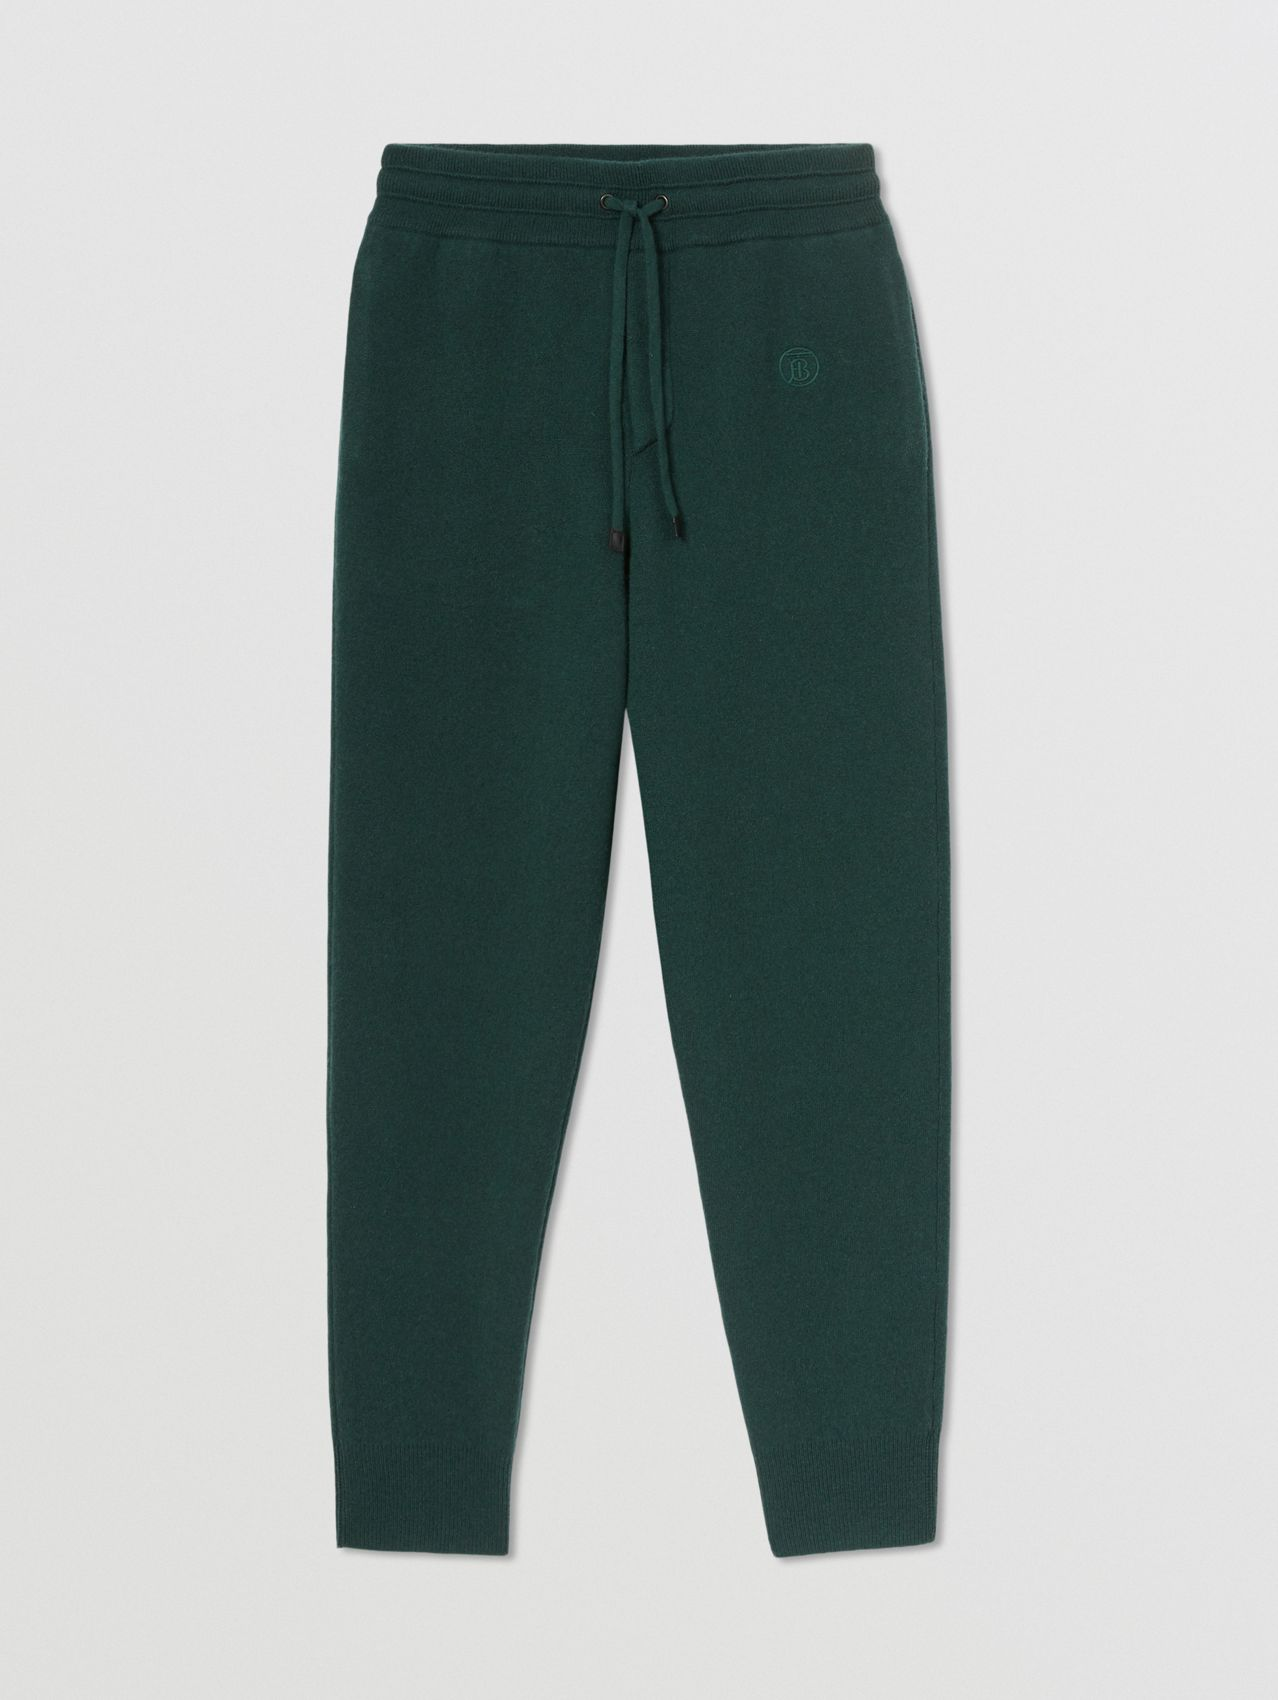 Monogram Motif Cashmere Blend Jogging Pants in Bottle Green